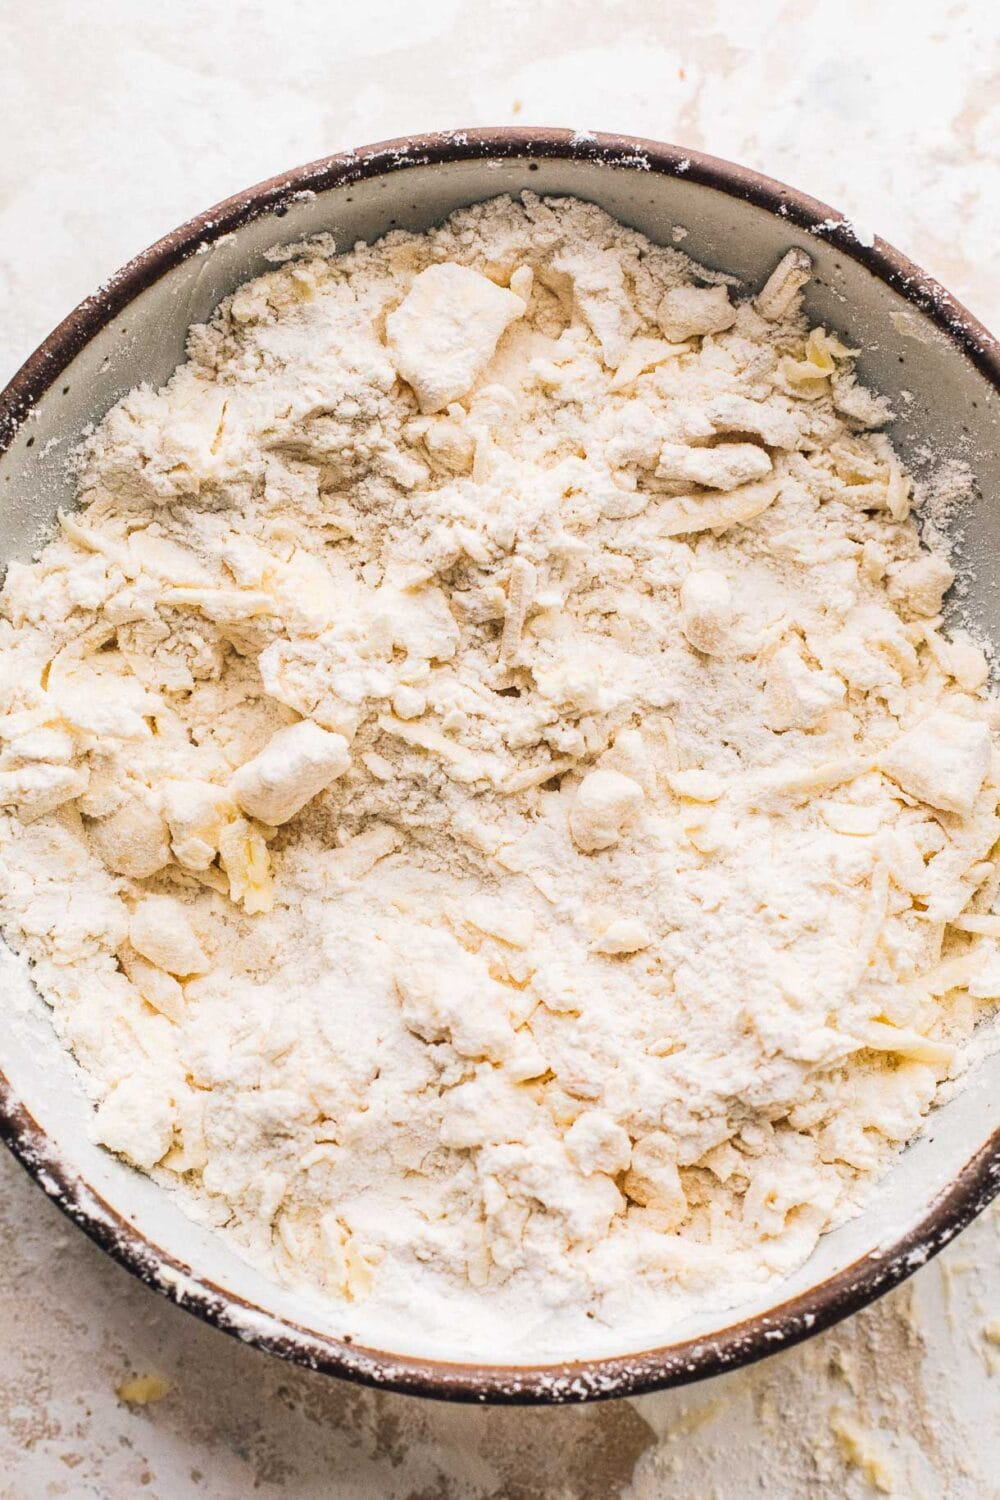 bowl of flour, grated butter, grated cheese in prep for making biscuits.